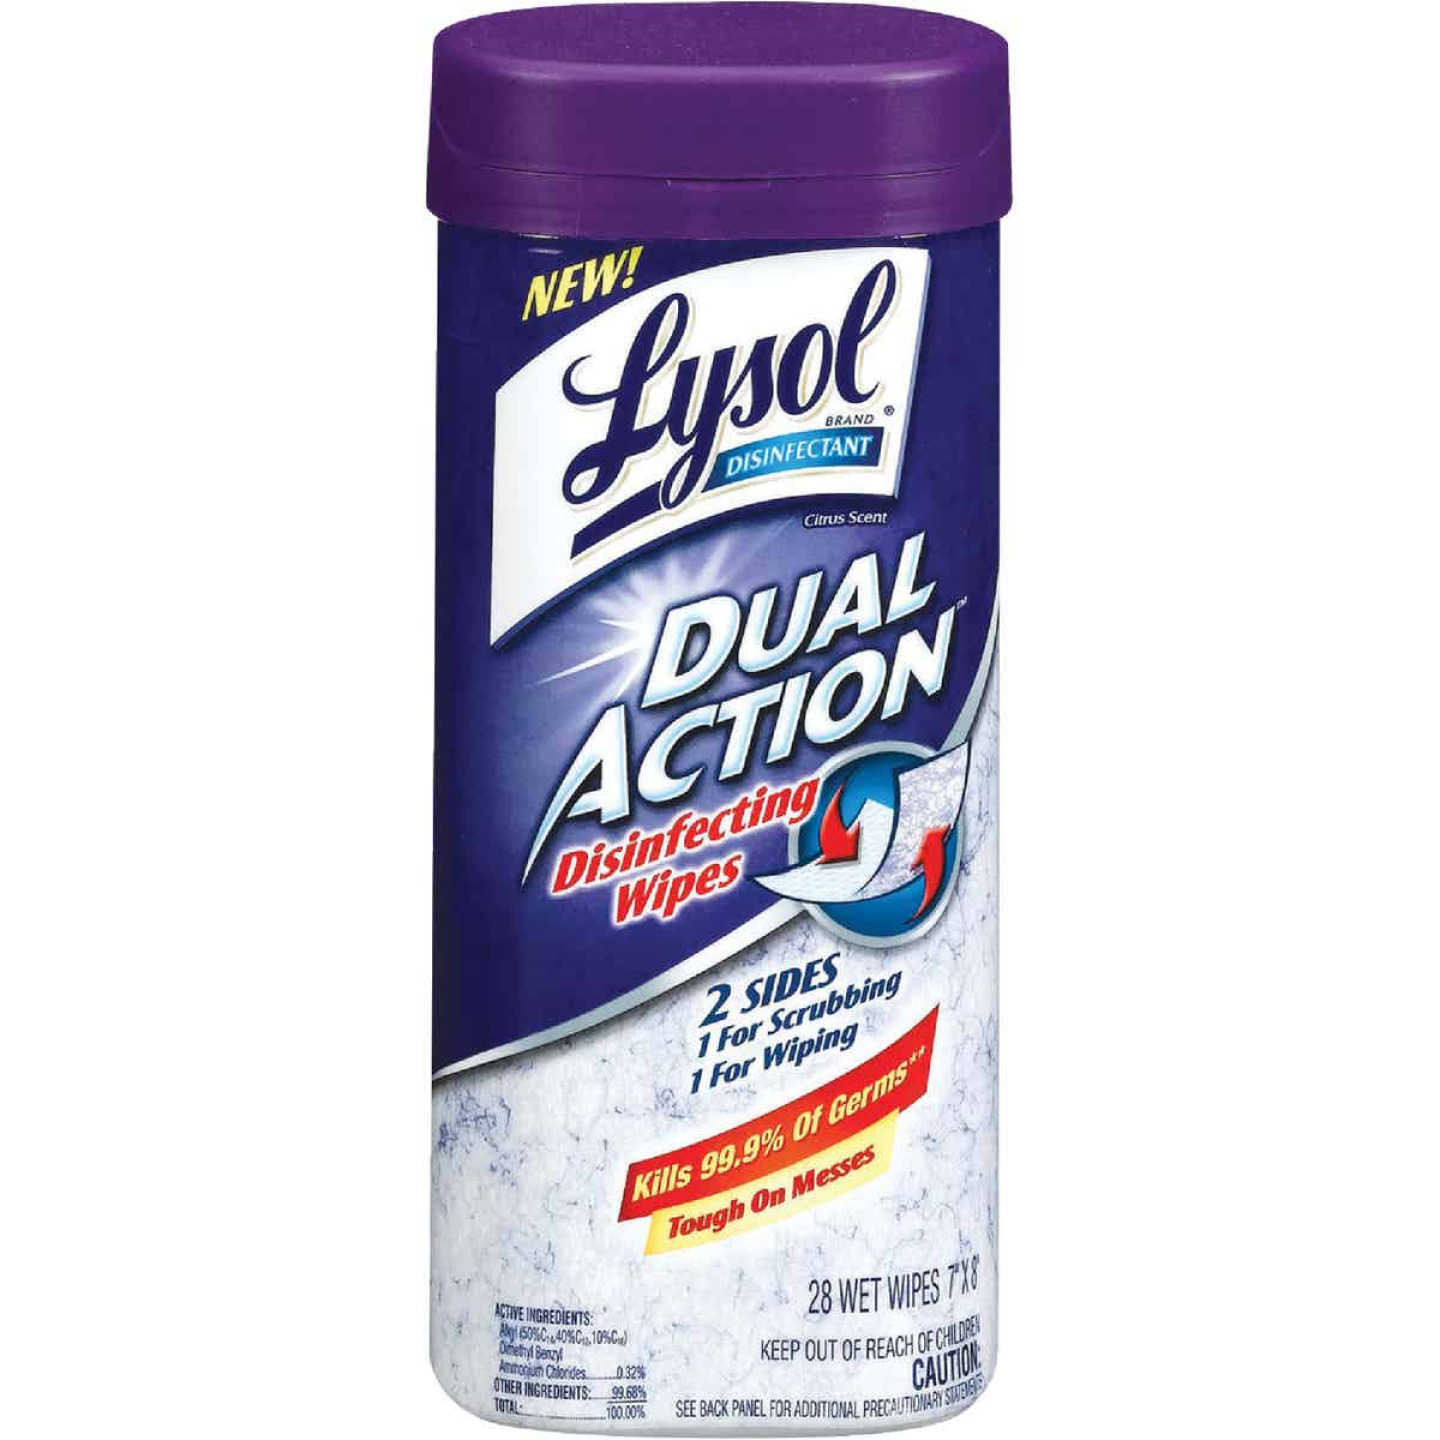 Lysol Dual Action Disinfecting Wipes (28-Count) Image 1